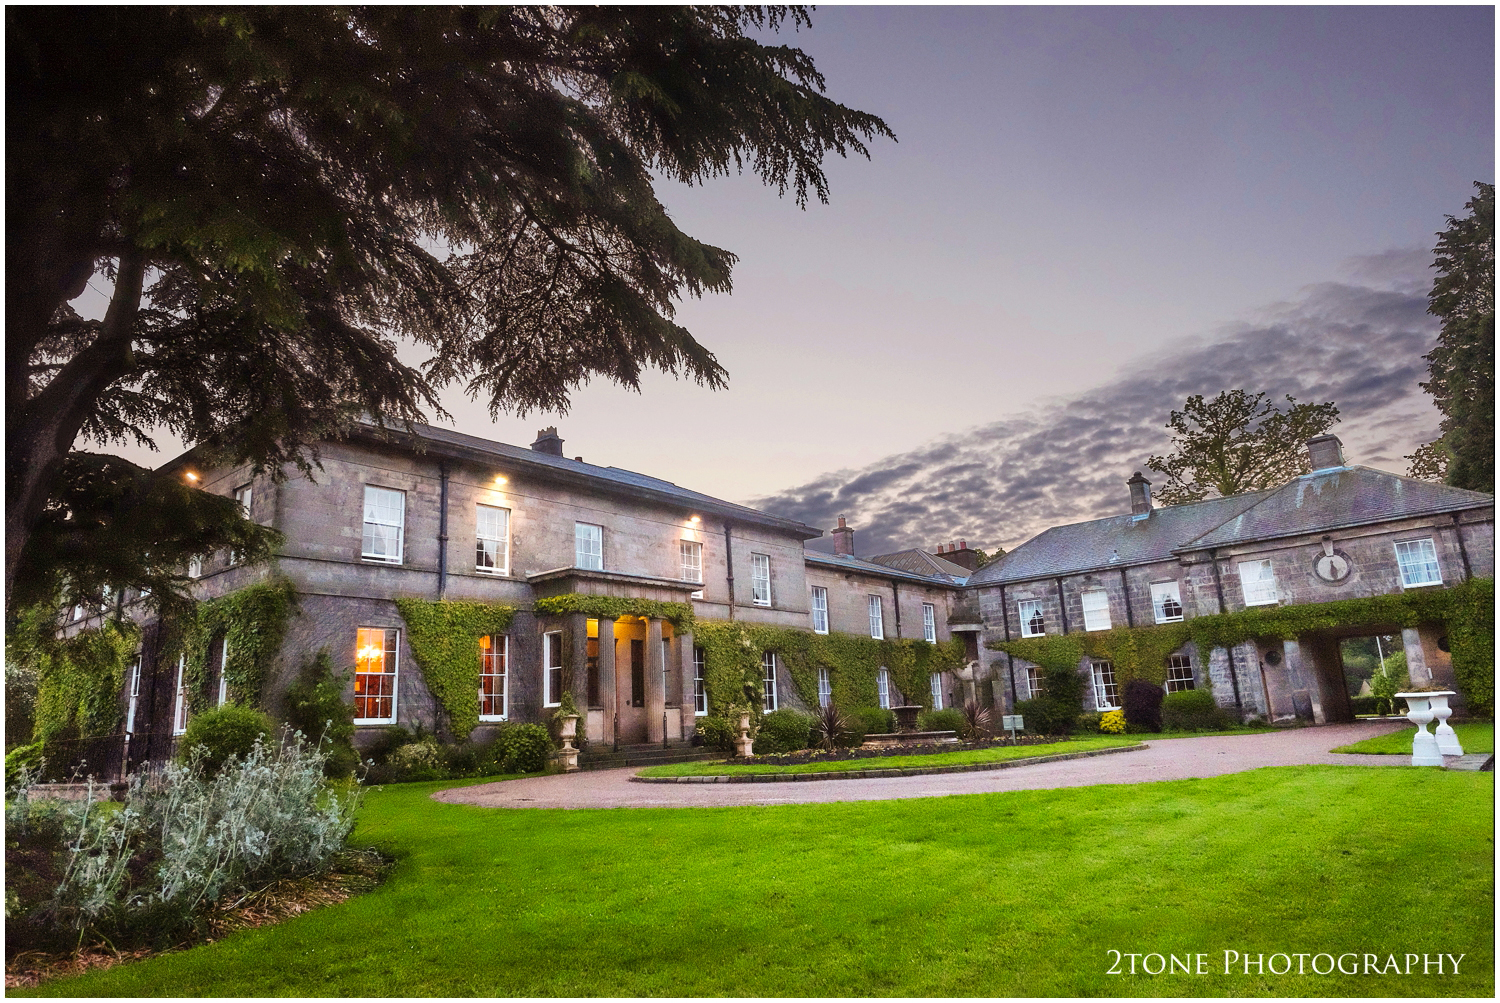 The end of the day, Doxford Hall looking stunning in the pastel shades of the early summer setting sun.